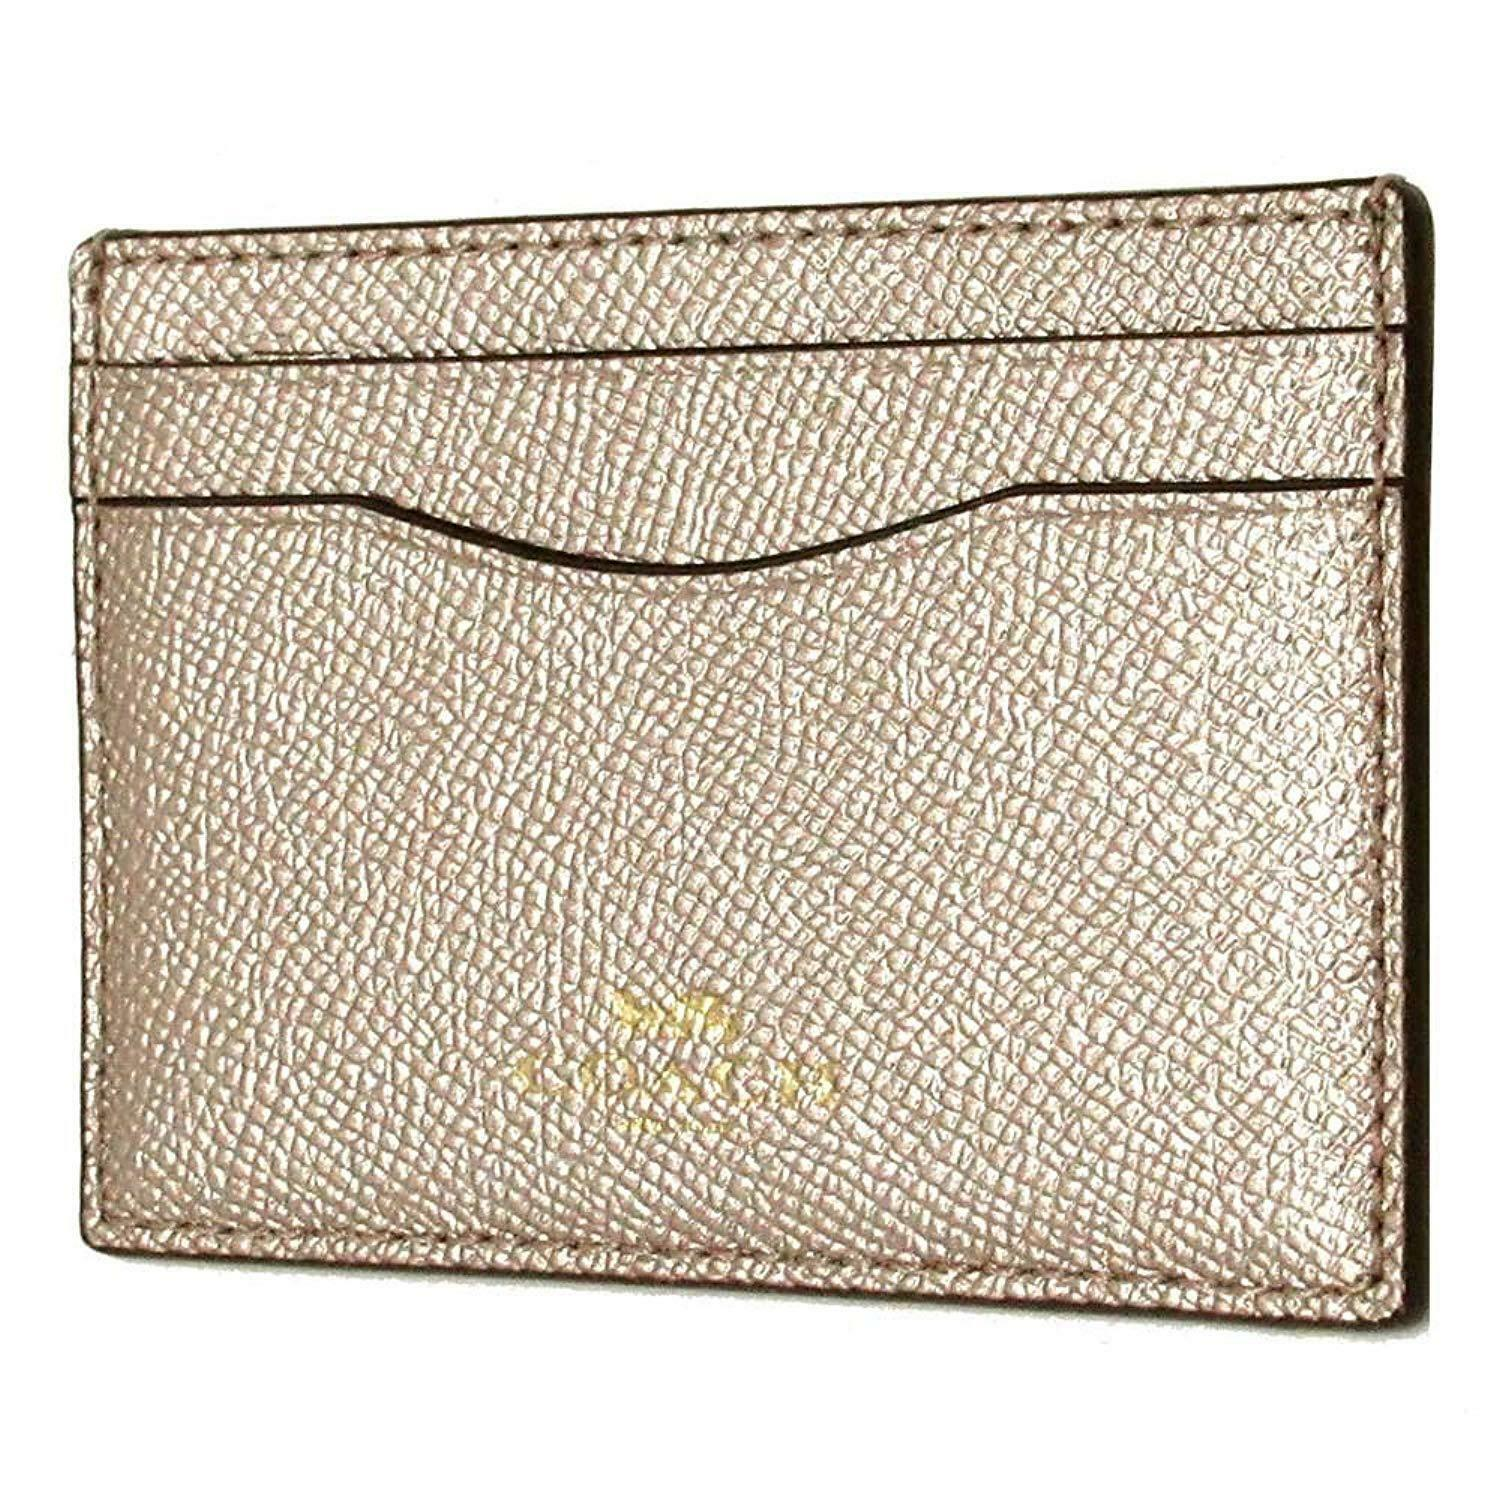 Coach Glitter Light Gold Platinum Crossgrain Leather Card Case